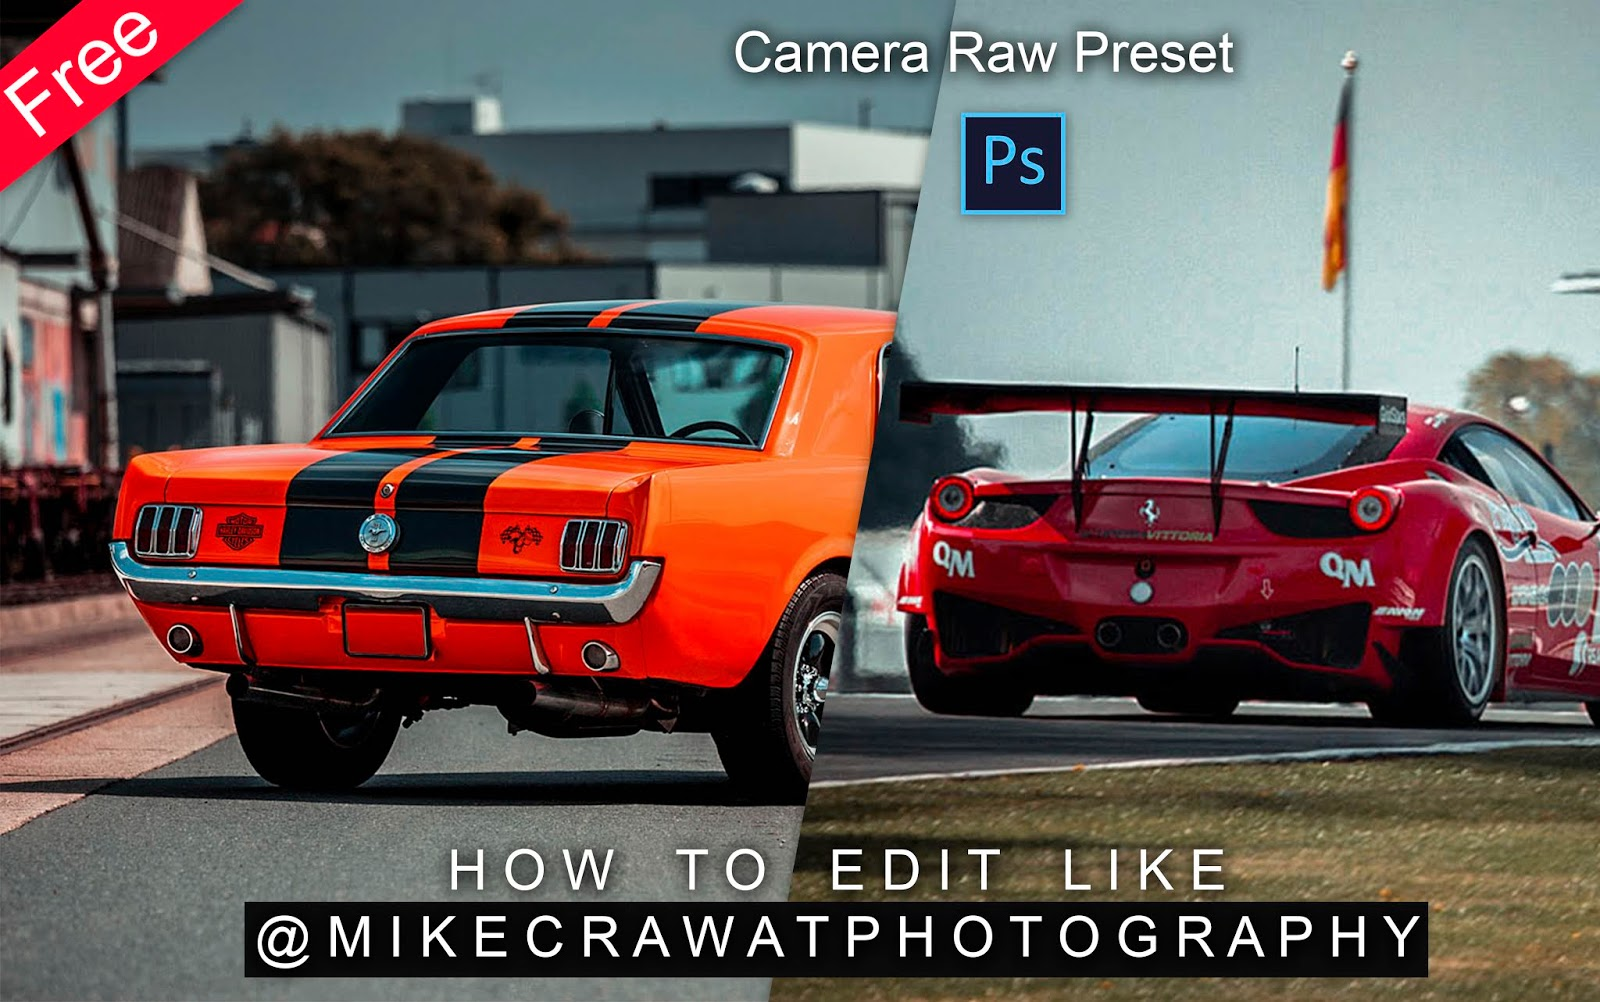 Download Mikecrawatphotography Inspired Camera Raw Preset for Free | How to Edit Photos Like mikecrawatphotography in Photoshop